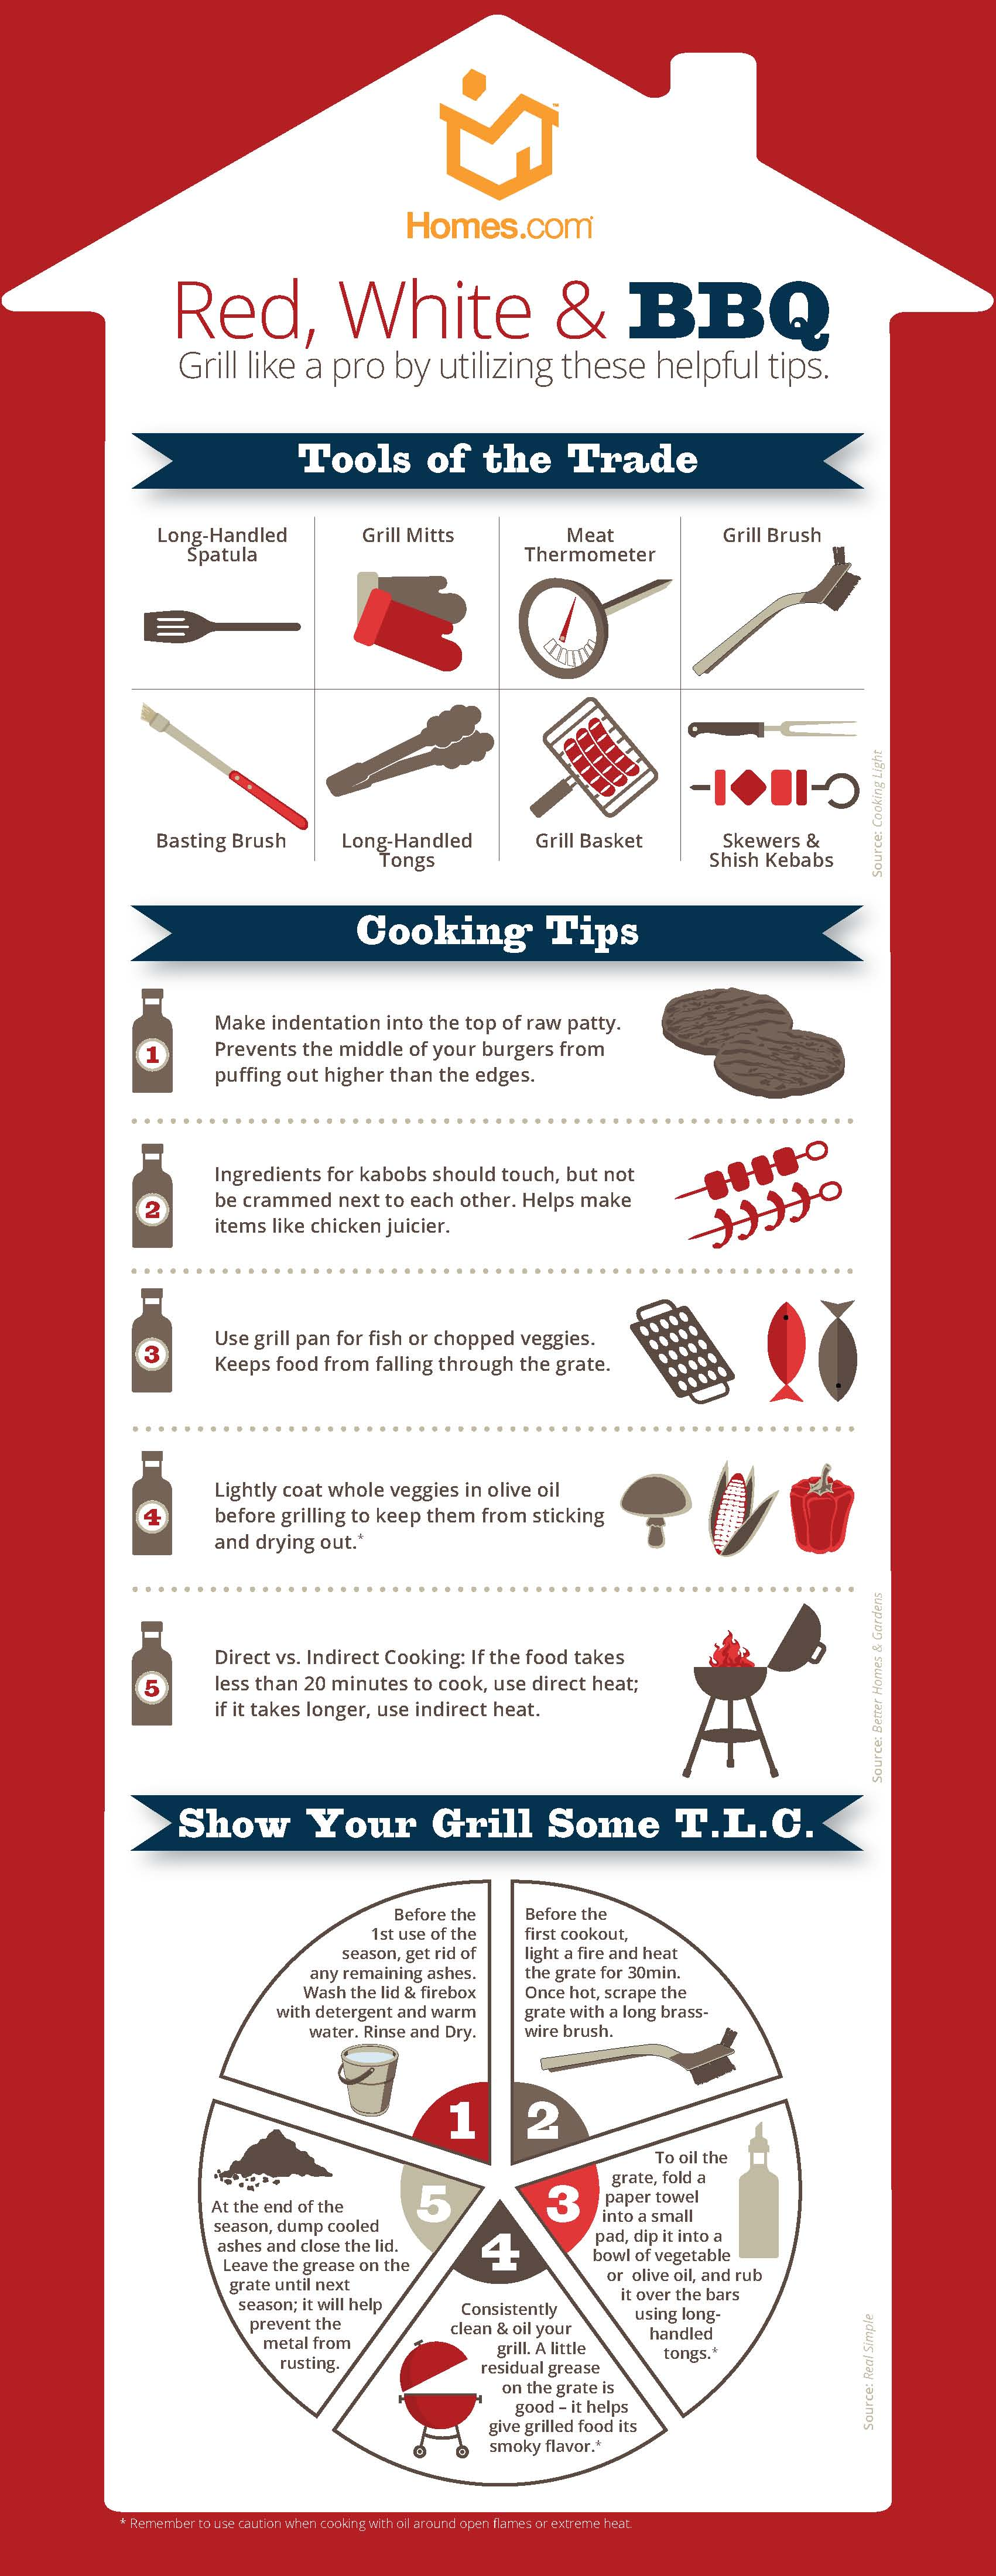 Homes.com Grilling Infographic